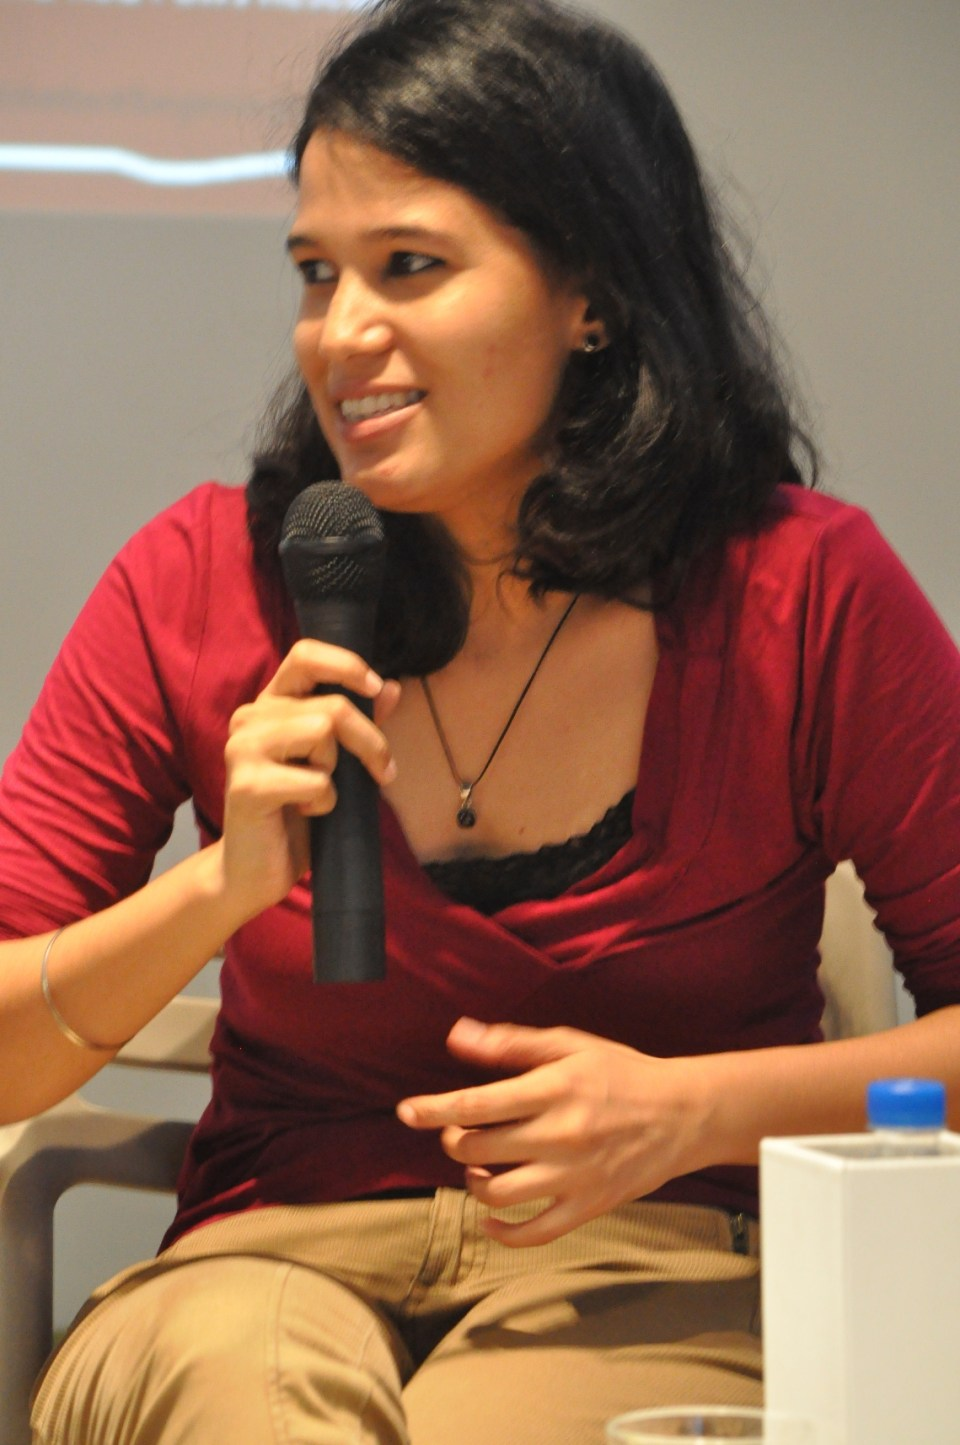 Vidyun Sabhaney talking about the book